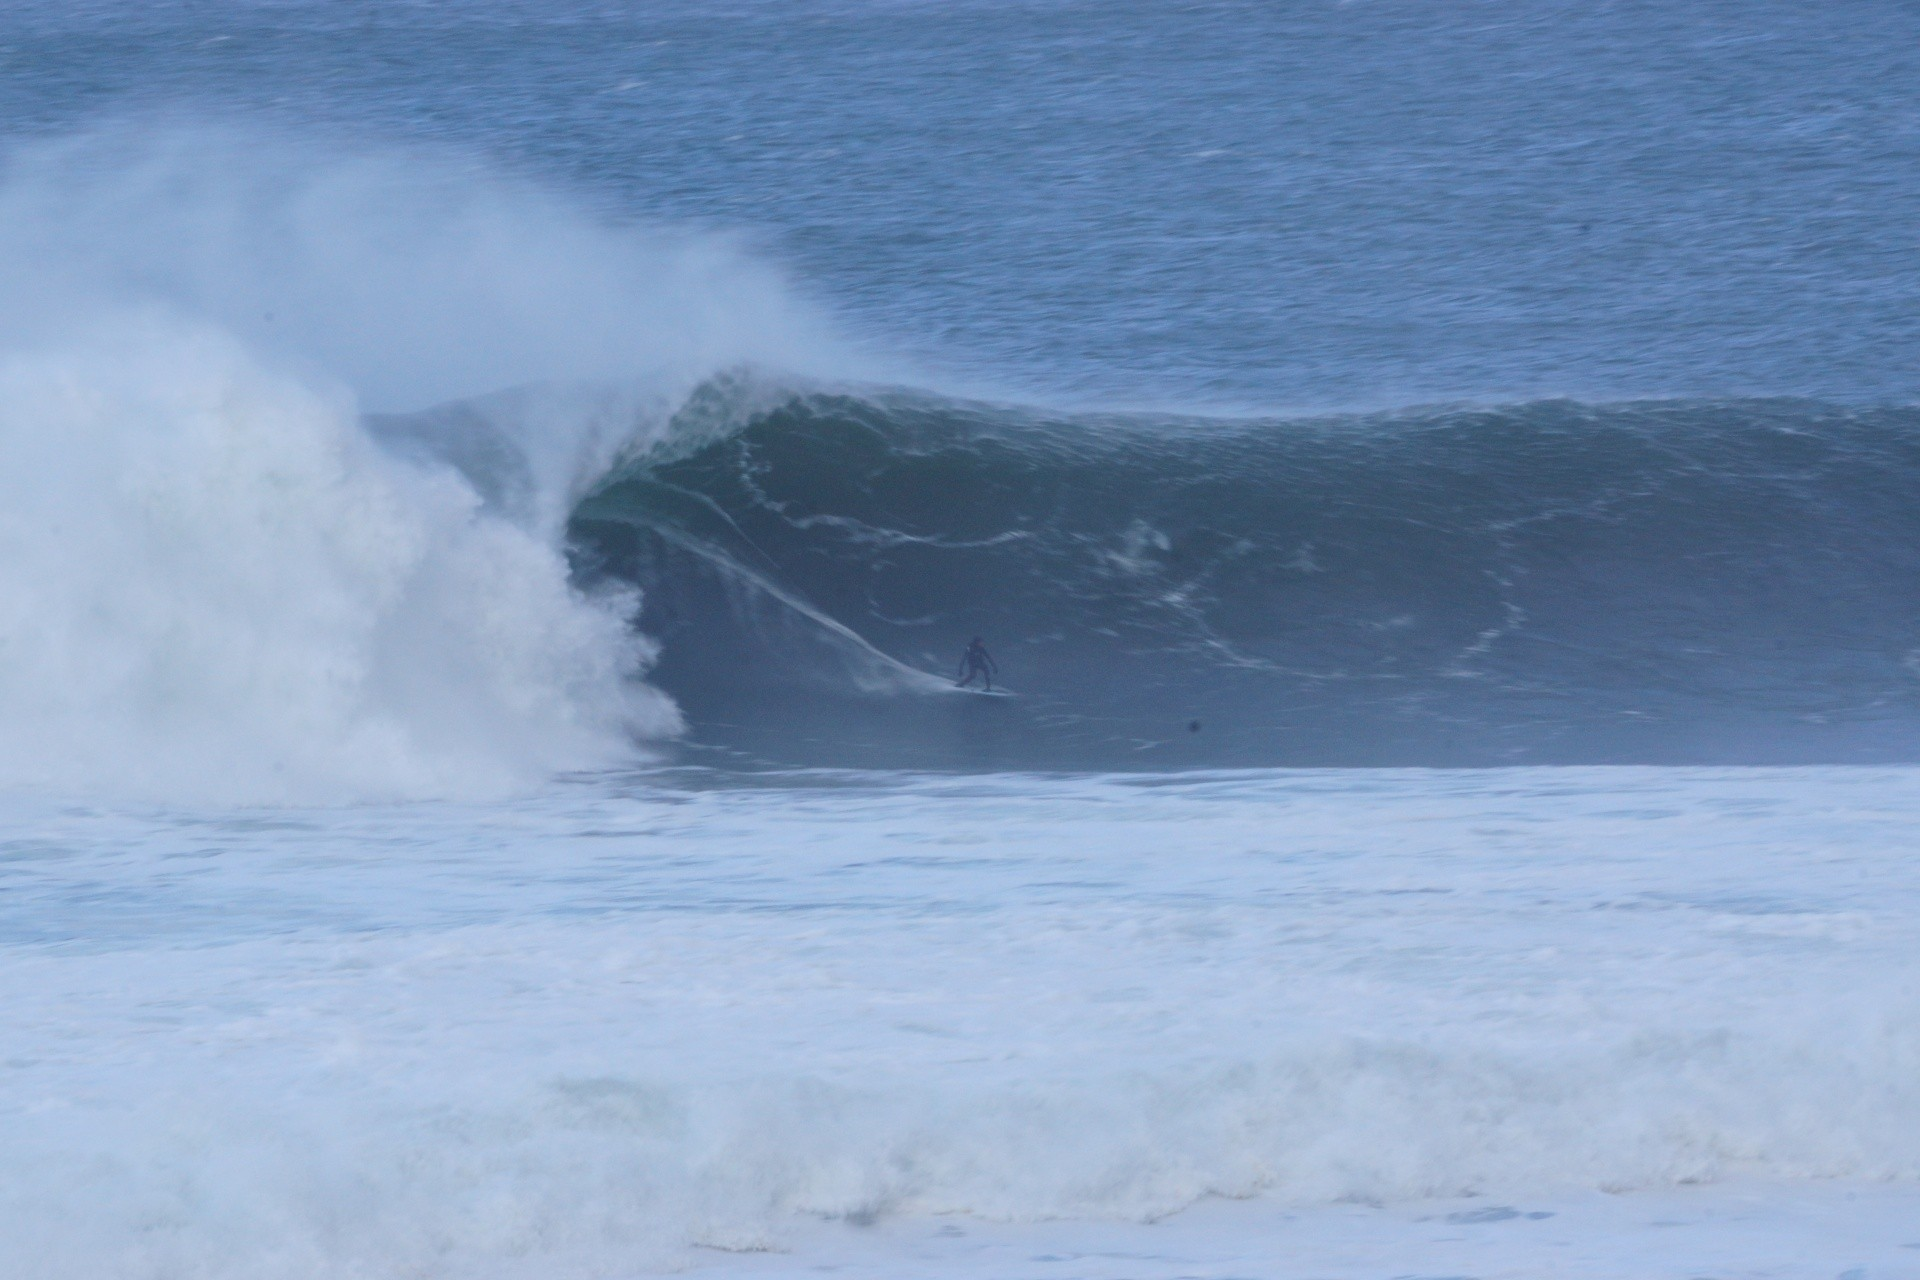 Micheal-H's photo of Mullaghmore Head